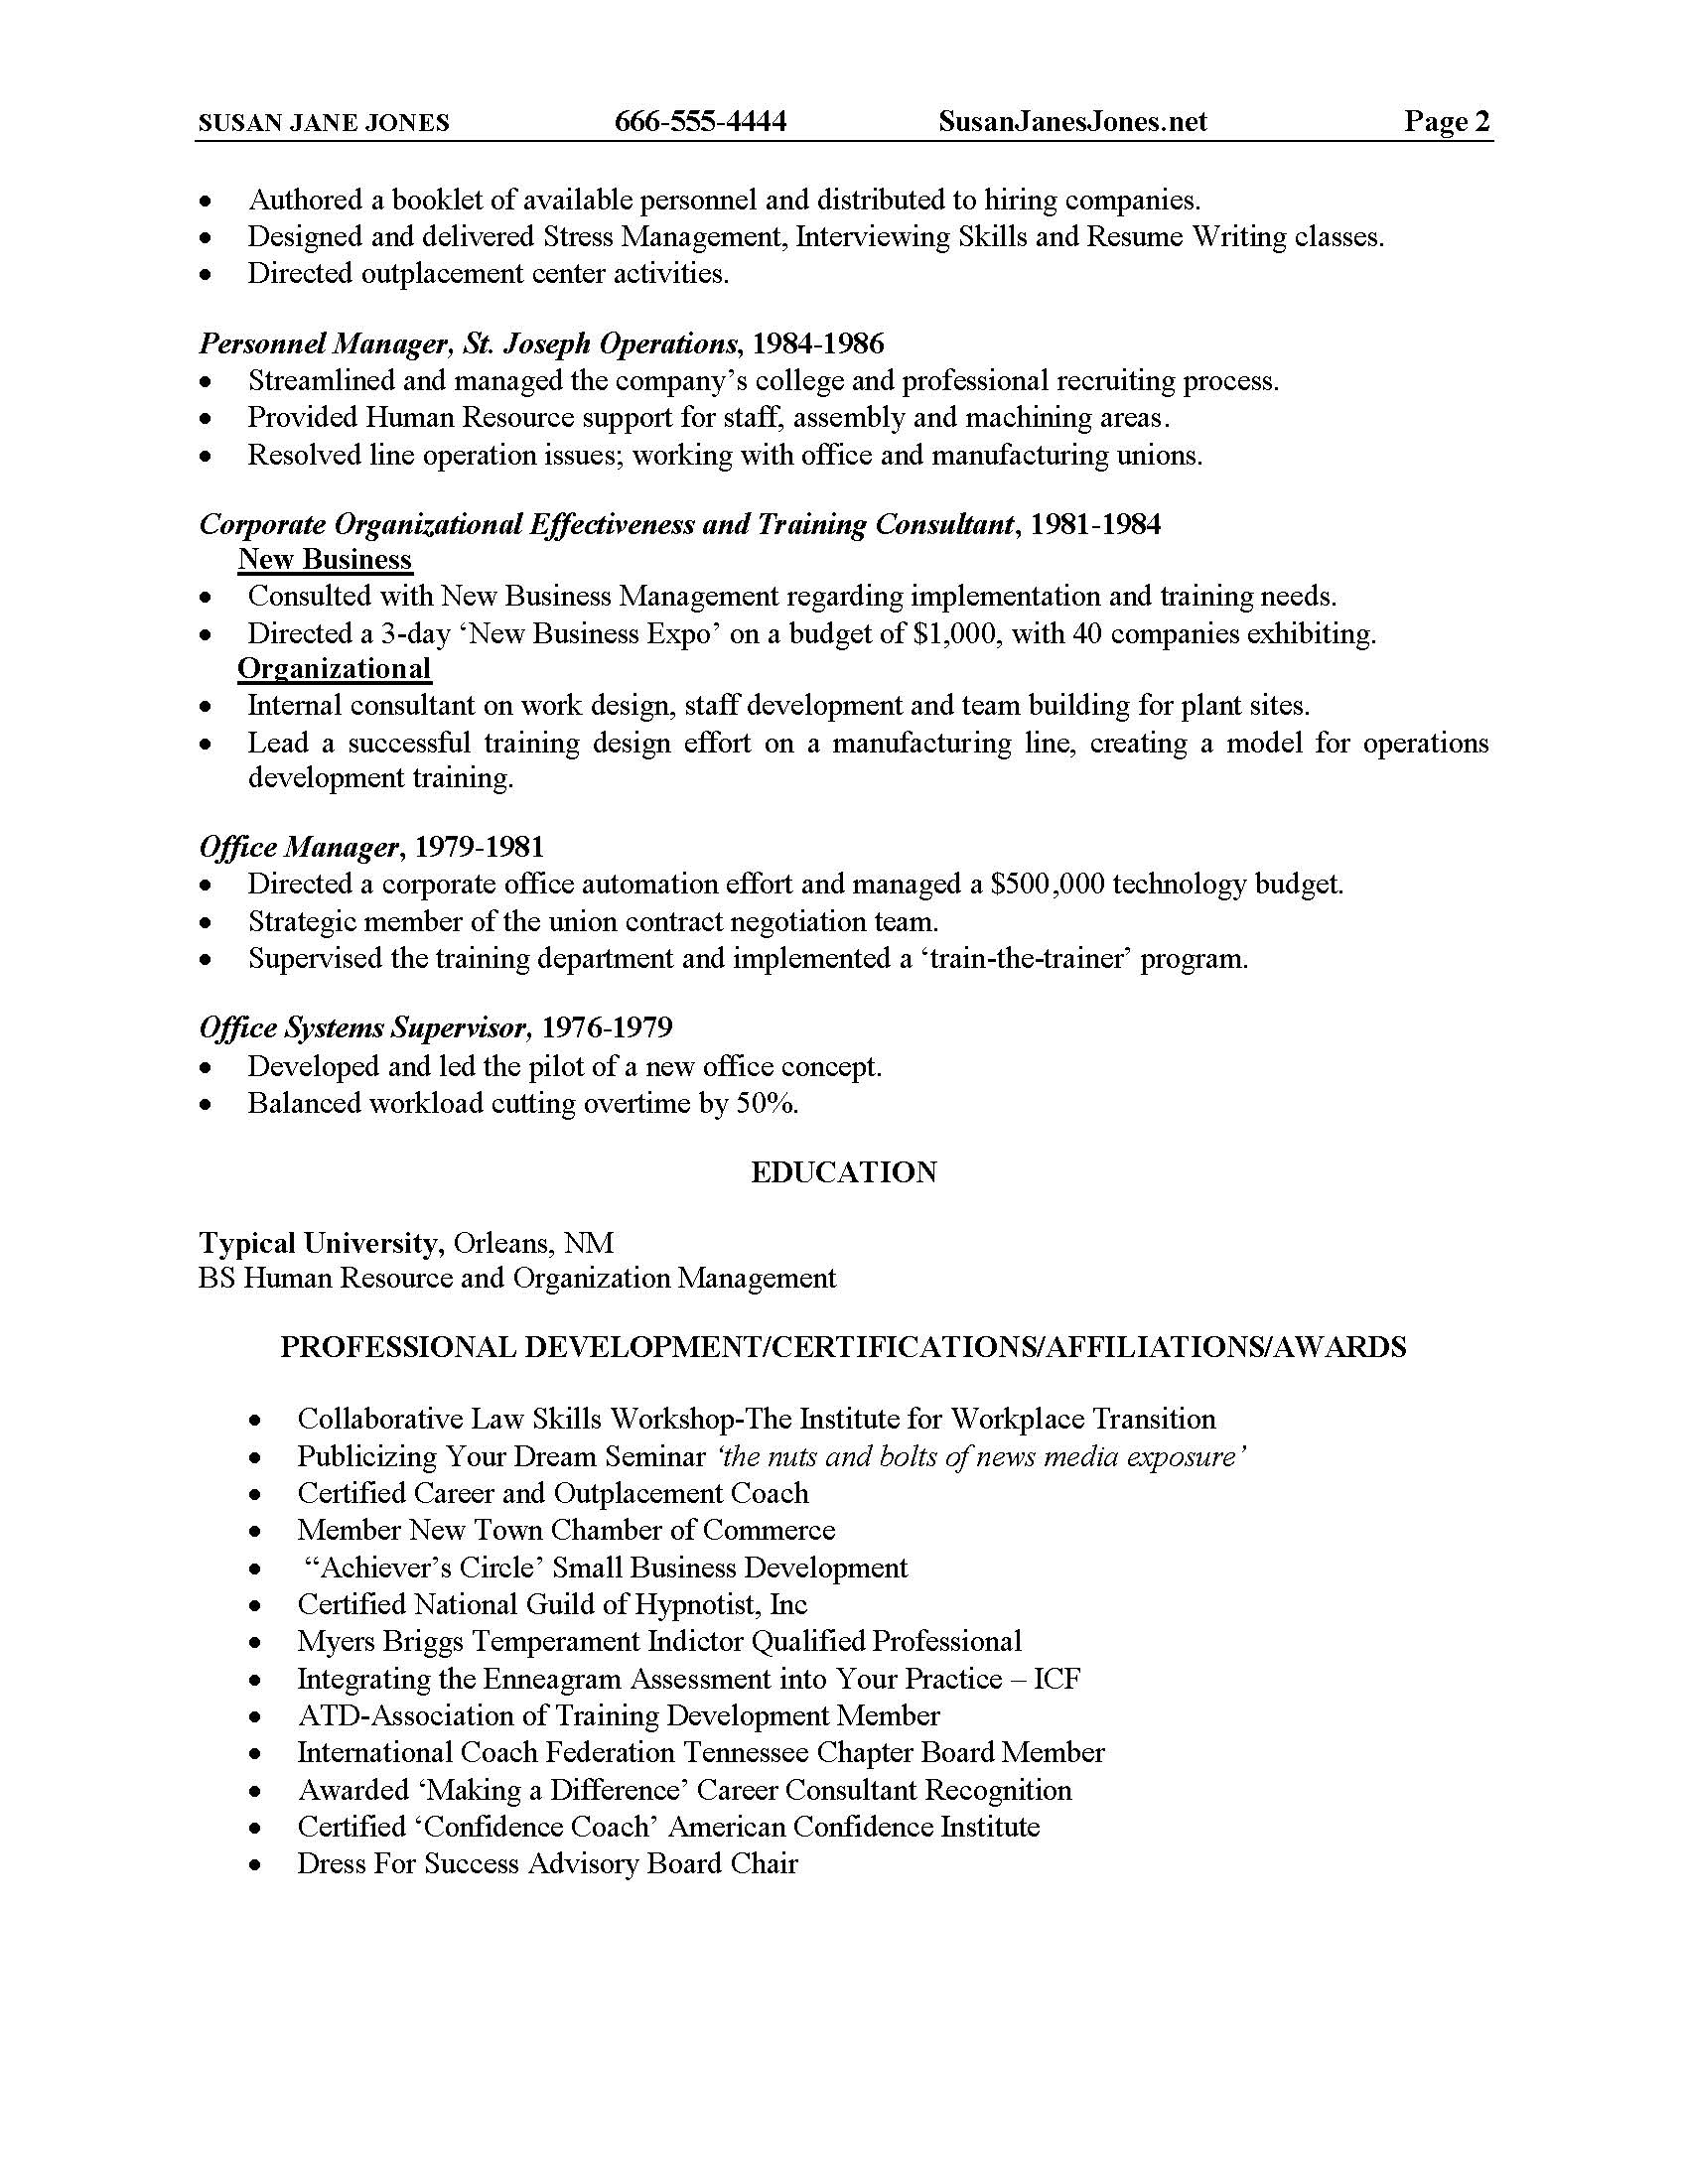 Resume Sample 2_Page_2  Resume Writing Classes